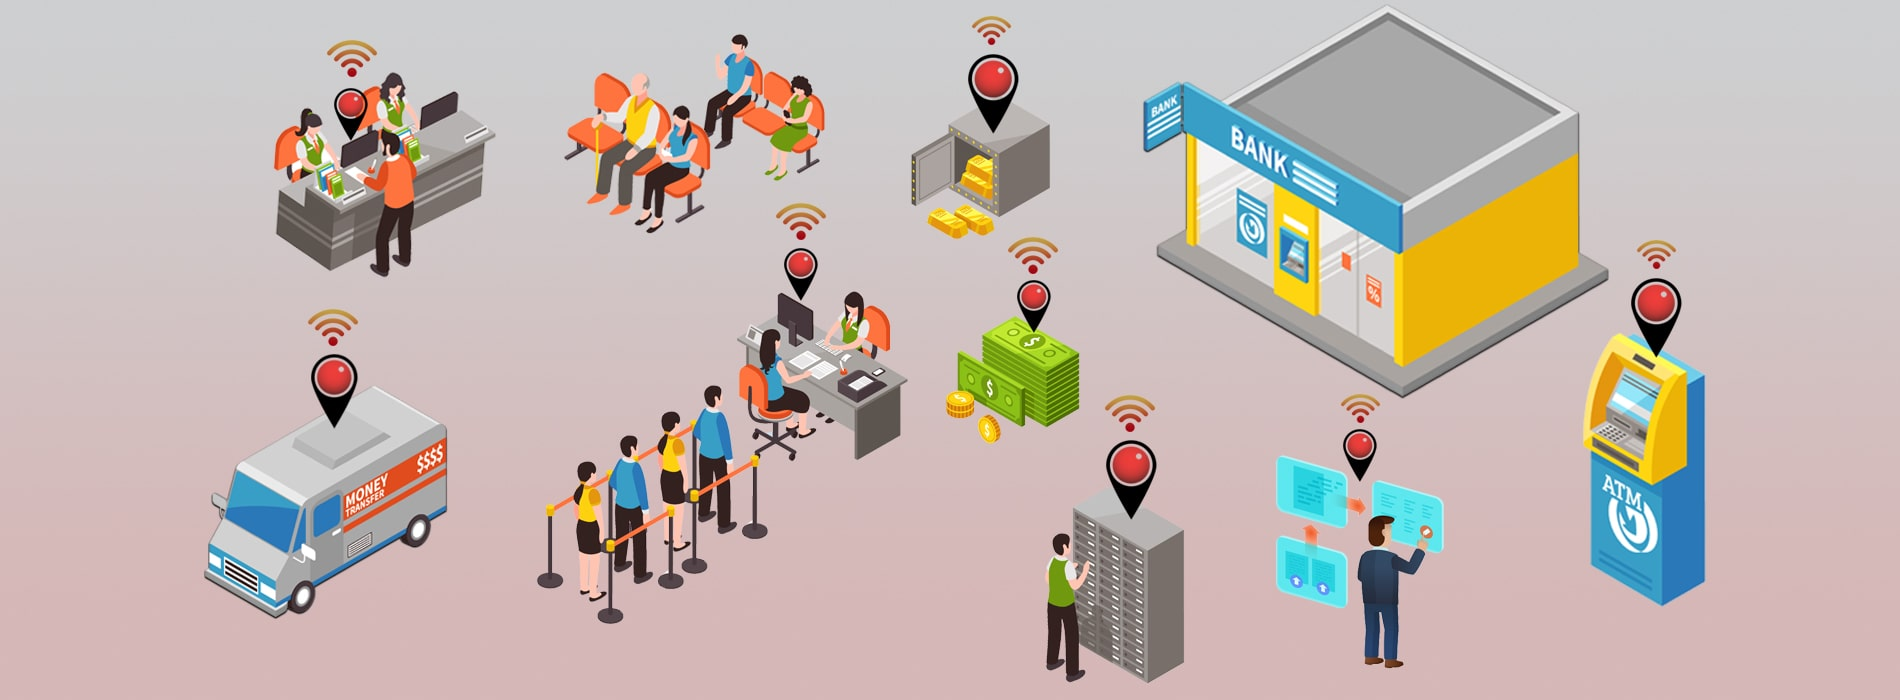 IoT Solutions for Banking, financial services and insurance industry